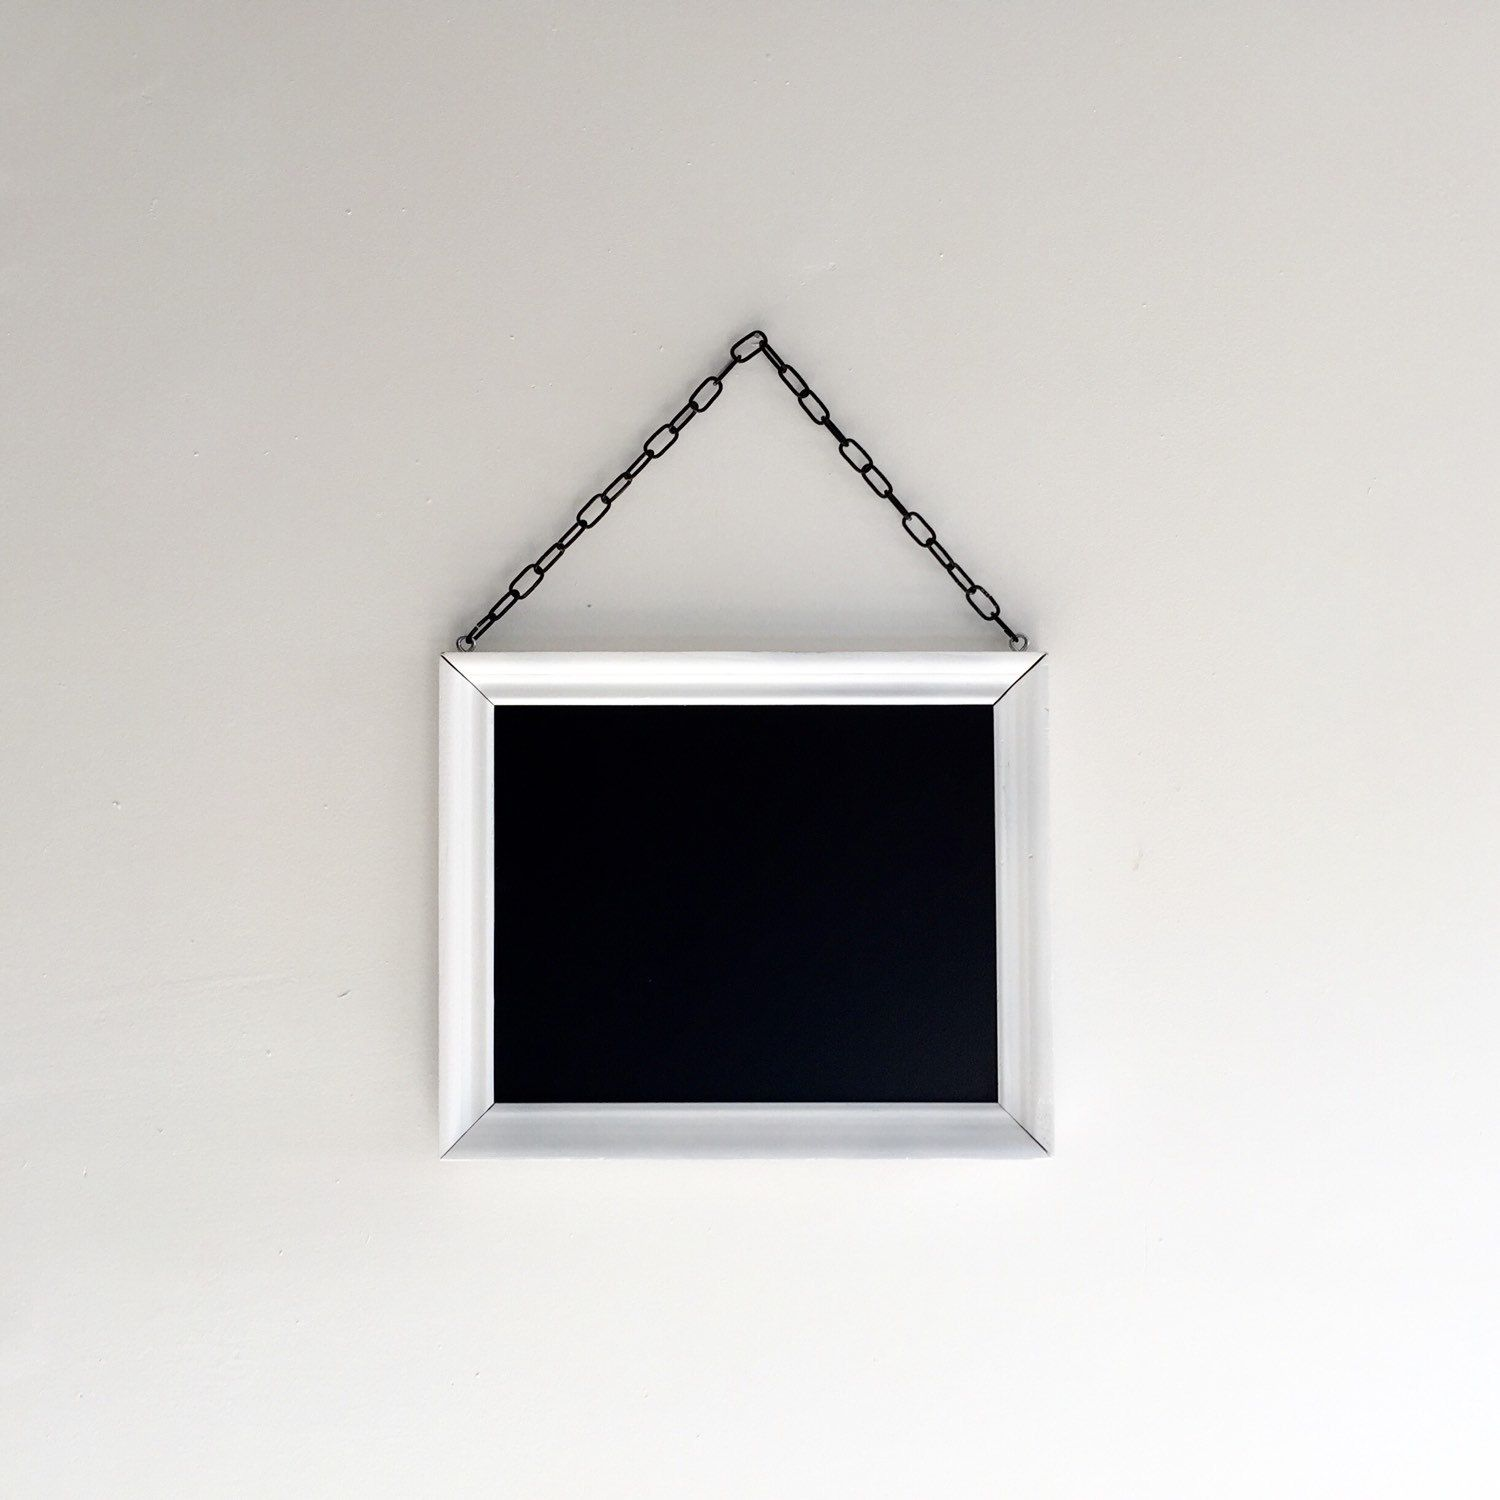 Pin by LeeArtDesigns on The New Black! (Vintage Framed Chalkboards ...